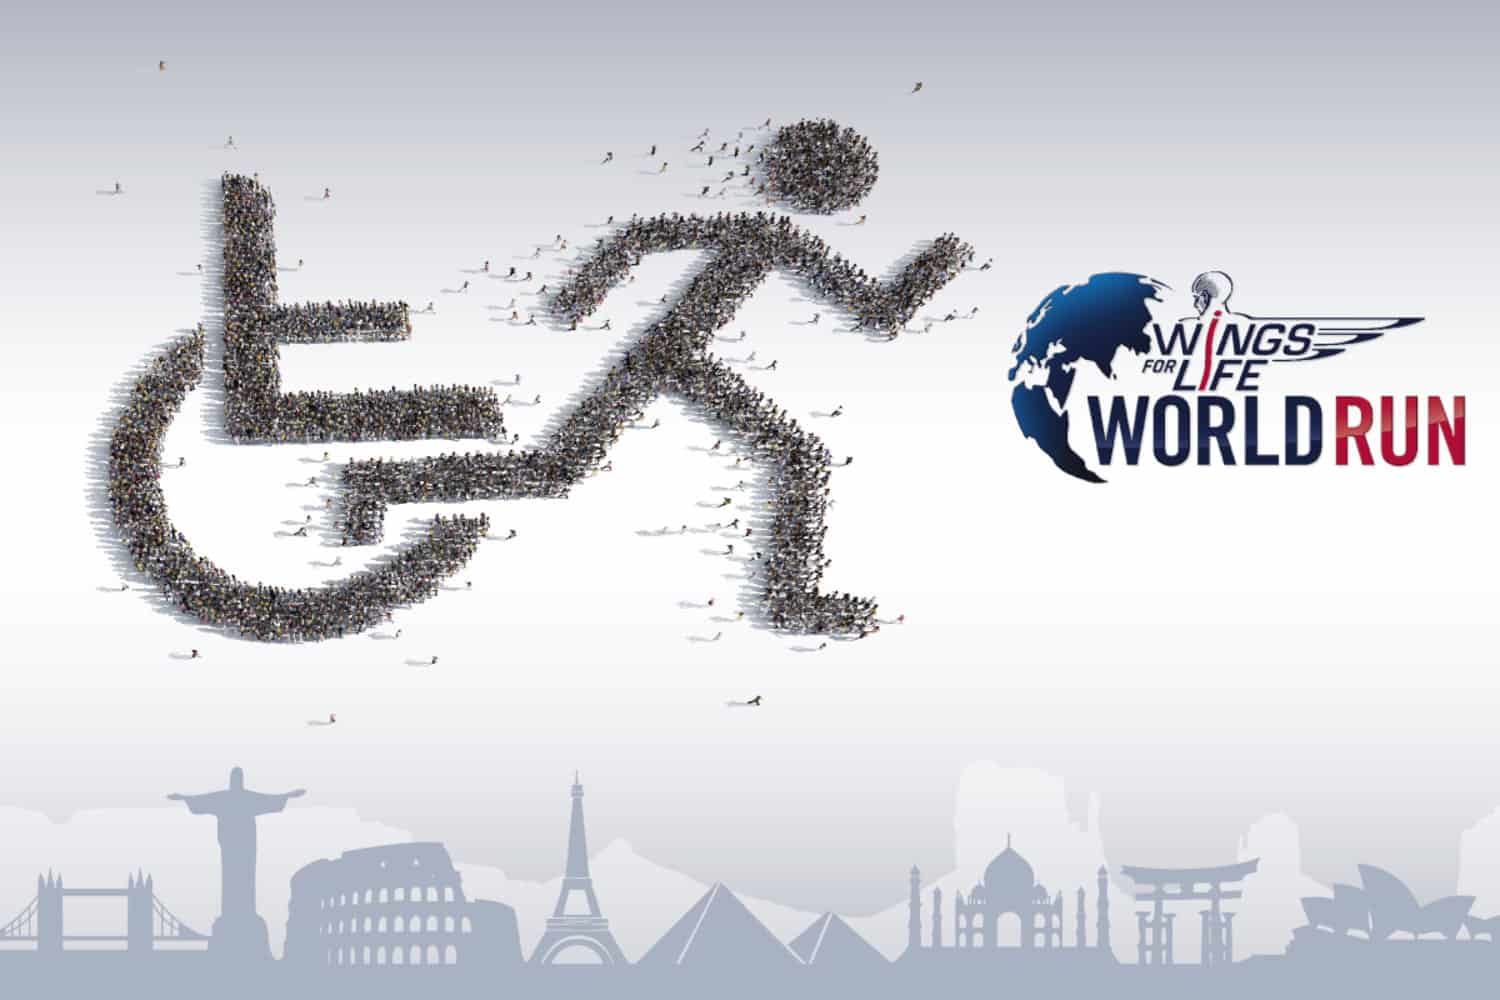 Wings-For-Life-World-Run-2014-logo